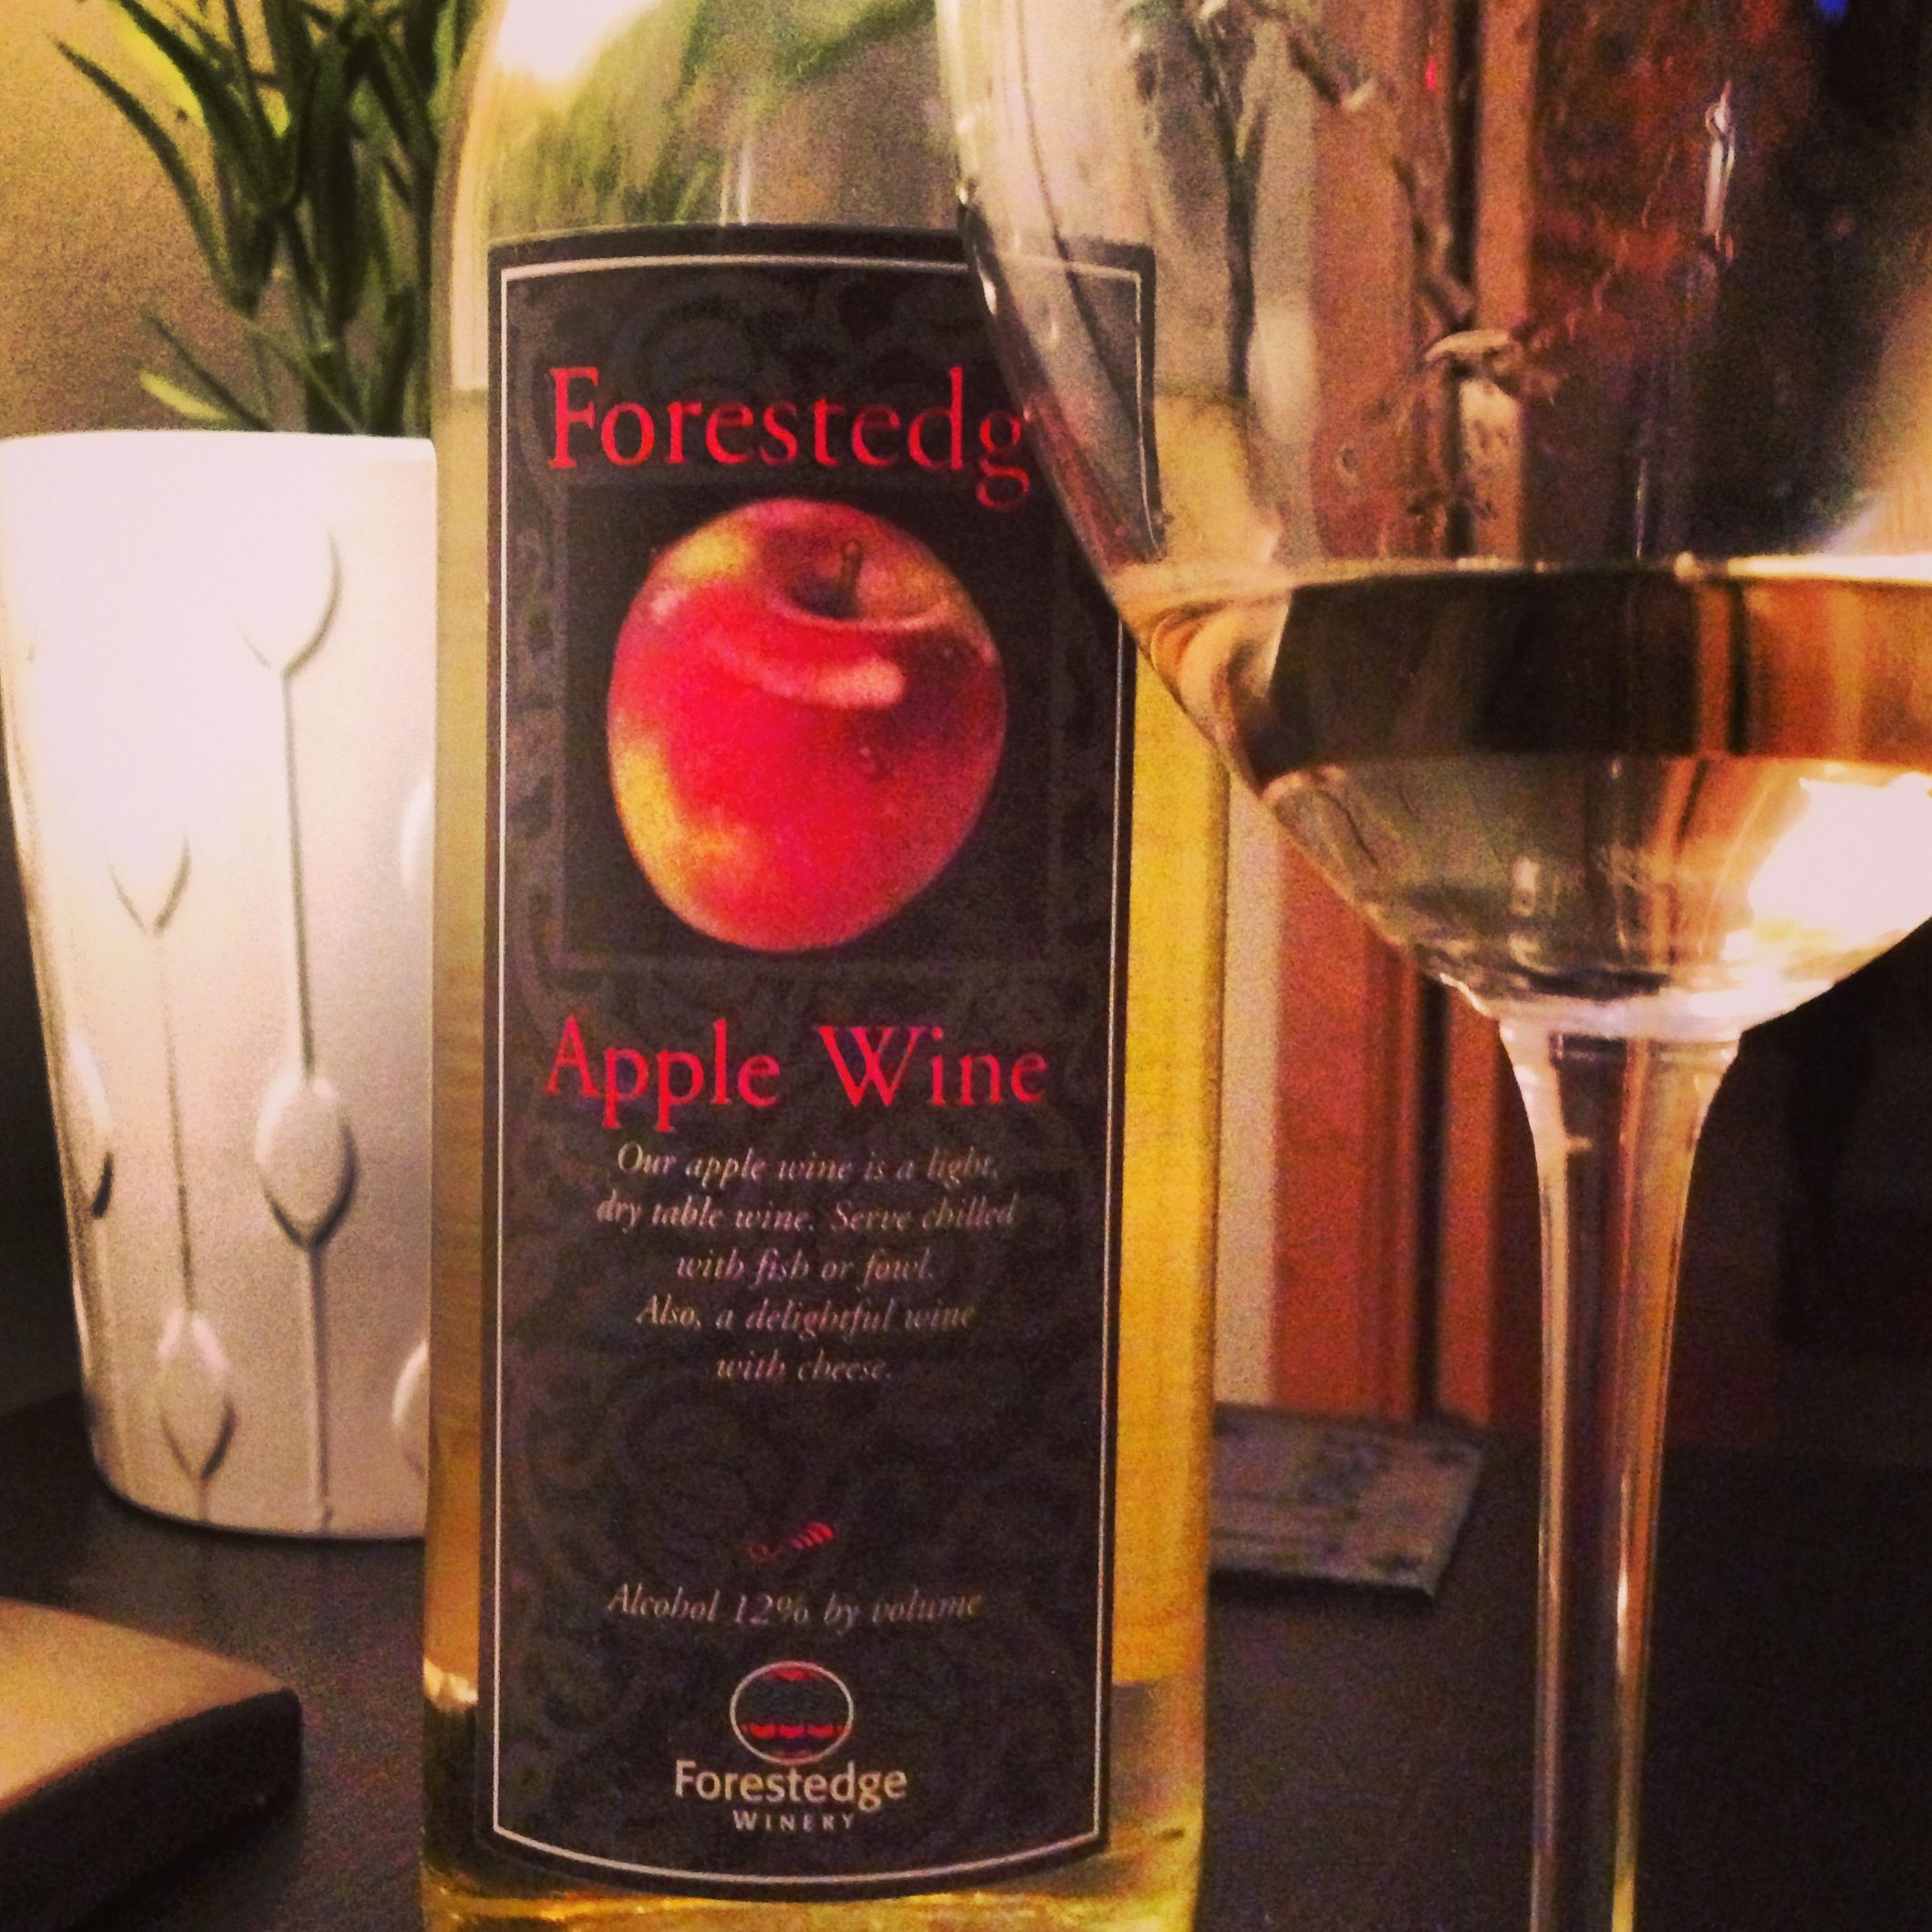 Forestedge Apple Wine Laporte Mn Hints Of Sweetness Surround This Plump Apple Y Mn Vino A Perfect Pairing To Obvi Apple Wine Apple Desserts Wine Bottle